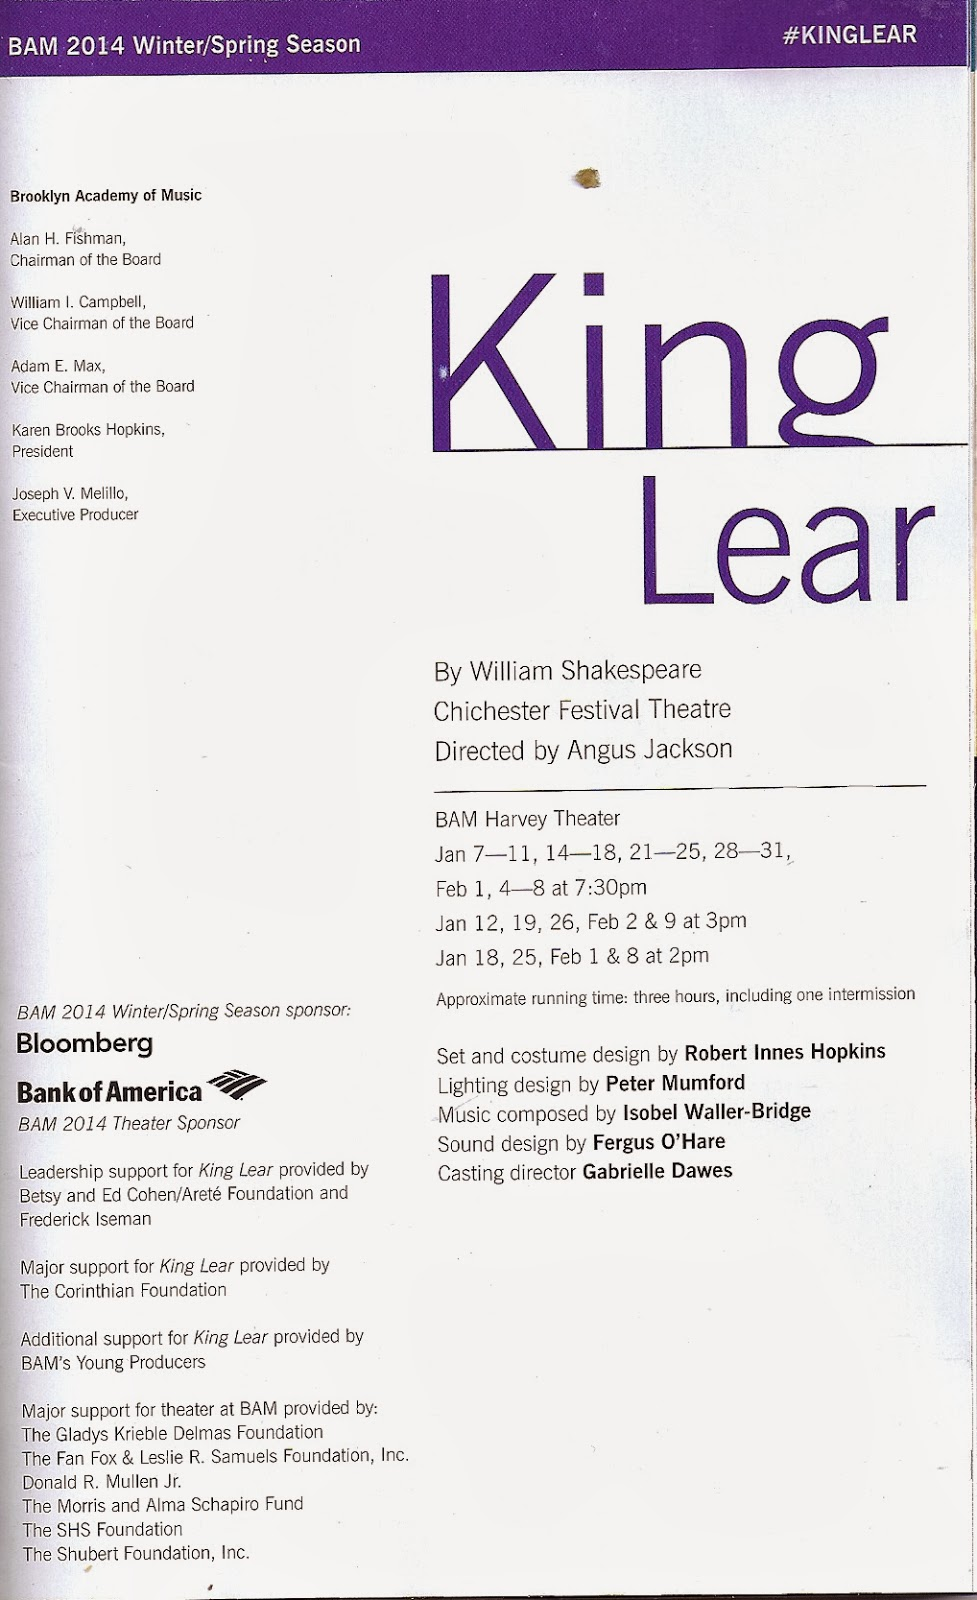 a comparison of king lear and cinderella Cordelia is king lear's favorite daughter until she refuses to flatter the old man and gets booted out of the kingdom without a dowry soon after, she marries the king of france and raises an army to fight her wicked sisters and win back her father's land.